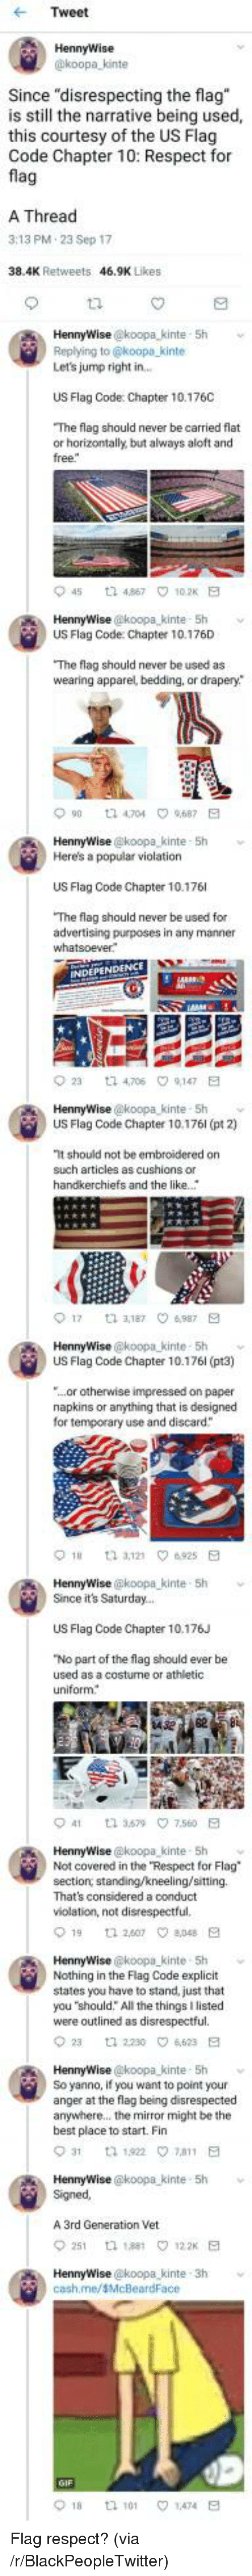 """Flag Code: Tweet  HennyWise  koopa kinte  Since """"disrespecting the flag  is still the narrative being used,  this courtesy of the US Flag  Code Chapter 10: Respect for  fla  A Thread  3:13 PM.23 Sep 17  38.4K Retweets  46.9K Likes  HennyWise @koopa_kinte 5h  Replying to @koopa kinte  Let's jump right in  US Flag Code: Chapter 10.176C  The flag should never be carried flat  or horizontally, but always aloft and  free  45 t2 467 102K E  US Flag Code: Chapter 10.176D  The flag should never be used as  wearing apparel, bedding, or drapery*  90 t 4704 9687 E  HennyWise @koopa kinte 5h  Here's a popular violation  US Flag Code Chapter 10.176  The flag should never be used for  advertising purposes in any manner  23  ta 4,706  9,147  HennyWise @koopa kinte- Sh  US Flag Code Chapter 10.176l (pt 2)  It should not be embroidered on  such articles as cushions or  handkerchiefs and the like.  017  3,187 ㅇ6,987  HennyWise @koopa kinte- 5h  US Flag Code Chapter 10.176l (pt3)  ...or otherwise impressed on paper  napkins or anything that is designed  for temporary use and discard  HennyWise @koopa-kinte , 5h  Since it's Saturday..  ﹀  US Flag Code Chapter 10.176J  No part of the flag should ever be  used as a costurne or athletic  uniform  41  3.579\7.560  HennyWise @koopa kinte 5h  Not covered in the Respect for Flag  section, standing/kneeling/sitting.  That's considered a conduct  violation, not disrespectful.  19 1 260708E  HennyWise @koopa kinte 5h  Nothing in the Flag Code explicit  states you have to stand, just that  you """"should: All the things I listed  were outlined as disrespectful.  2  2230 4623 E  HennyWise @koopa kinte 5h v  So yanno, if you want to point your  anger at the flag being disrespected  anywhere.. the mirror might be the  best place to start. Fin  HennyWise @koopa kinte 5h  Signed  A 3rd Generation Vet  251 th 188 122 E  cash.me/sMcBeardFace  018  tl 101  1.474 <p>Flag respect? (via /r/BlackPeopleTwitter)</p>"""